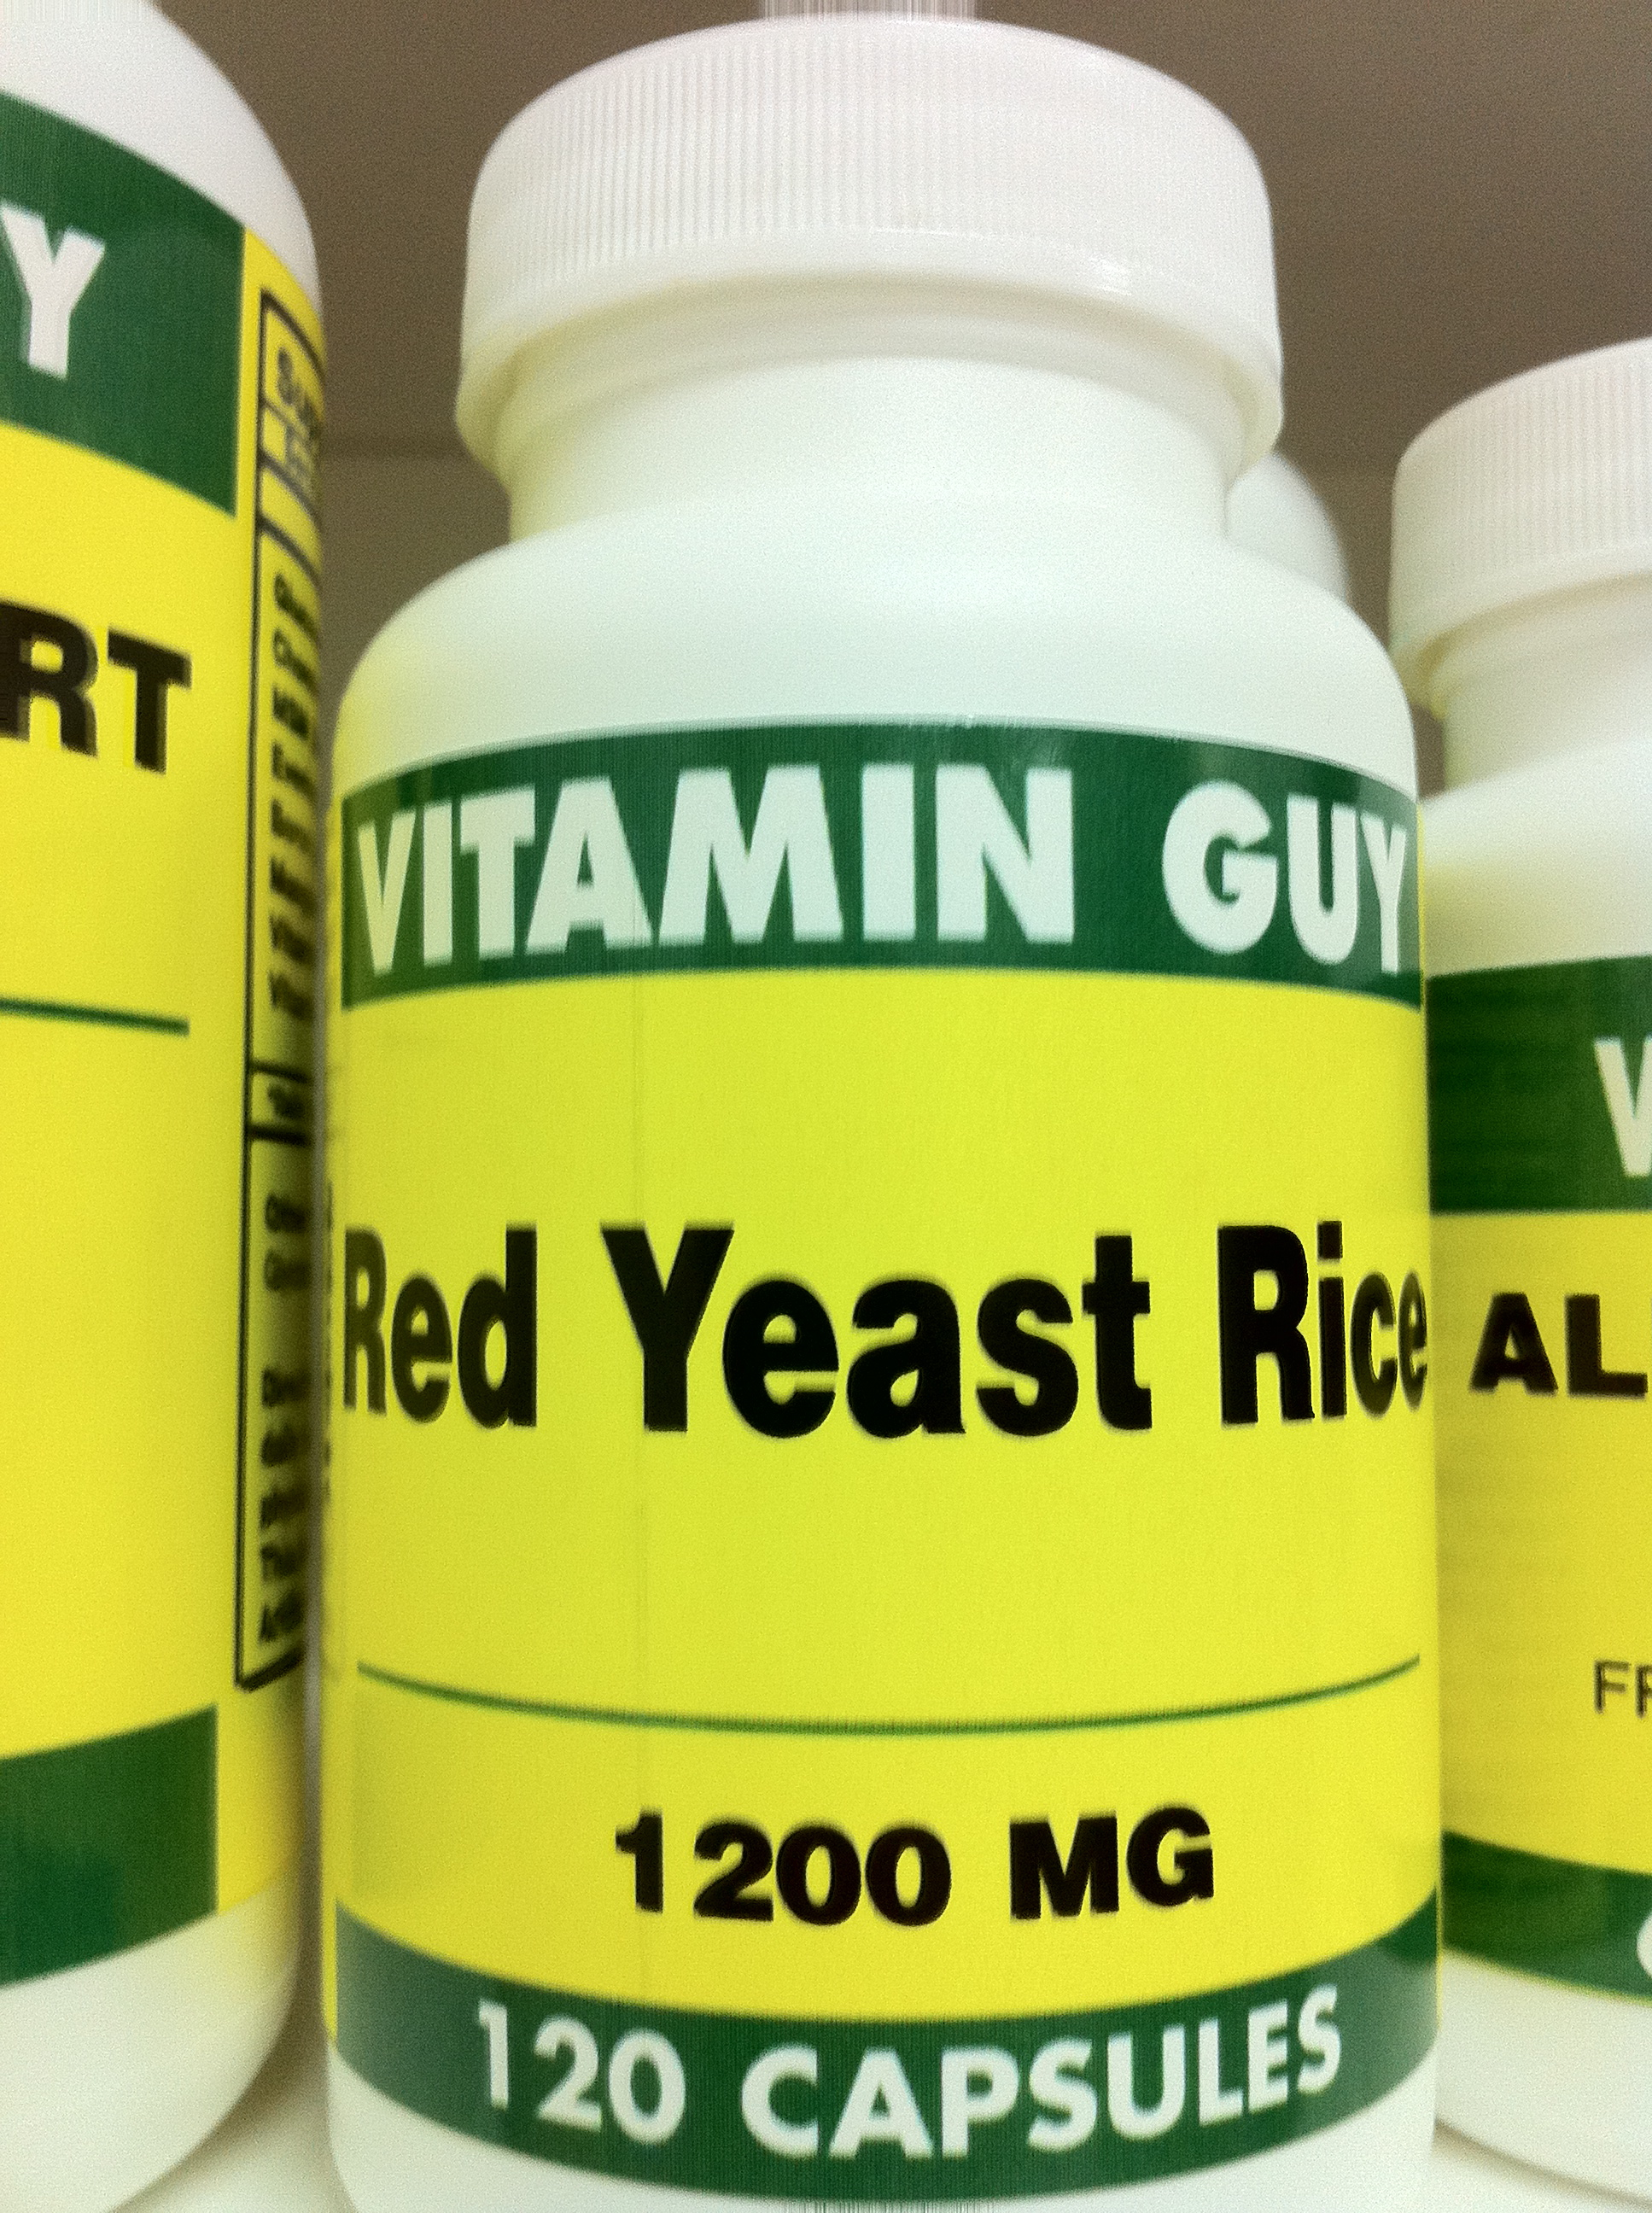 Red Yeast Rice 600 mg (120 capsules)